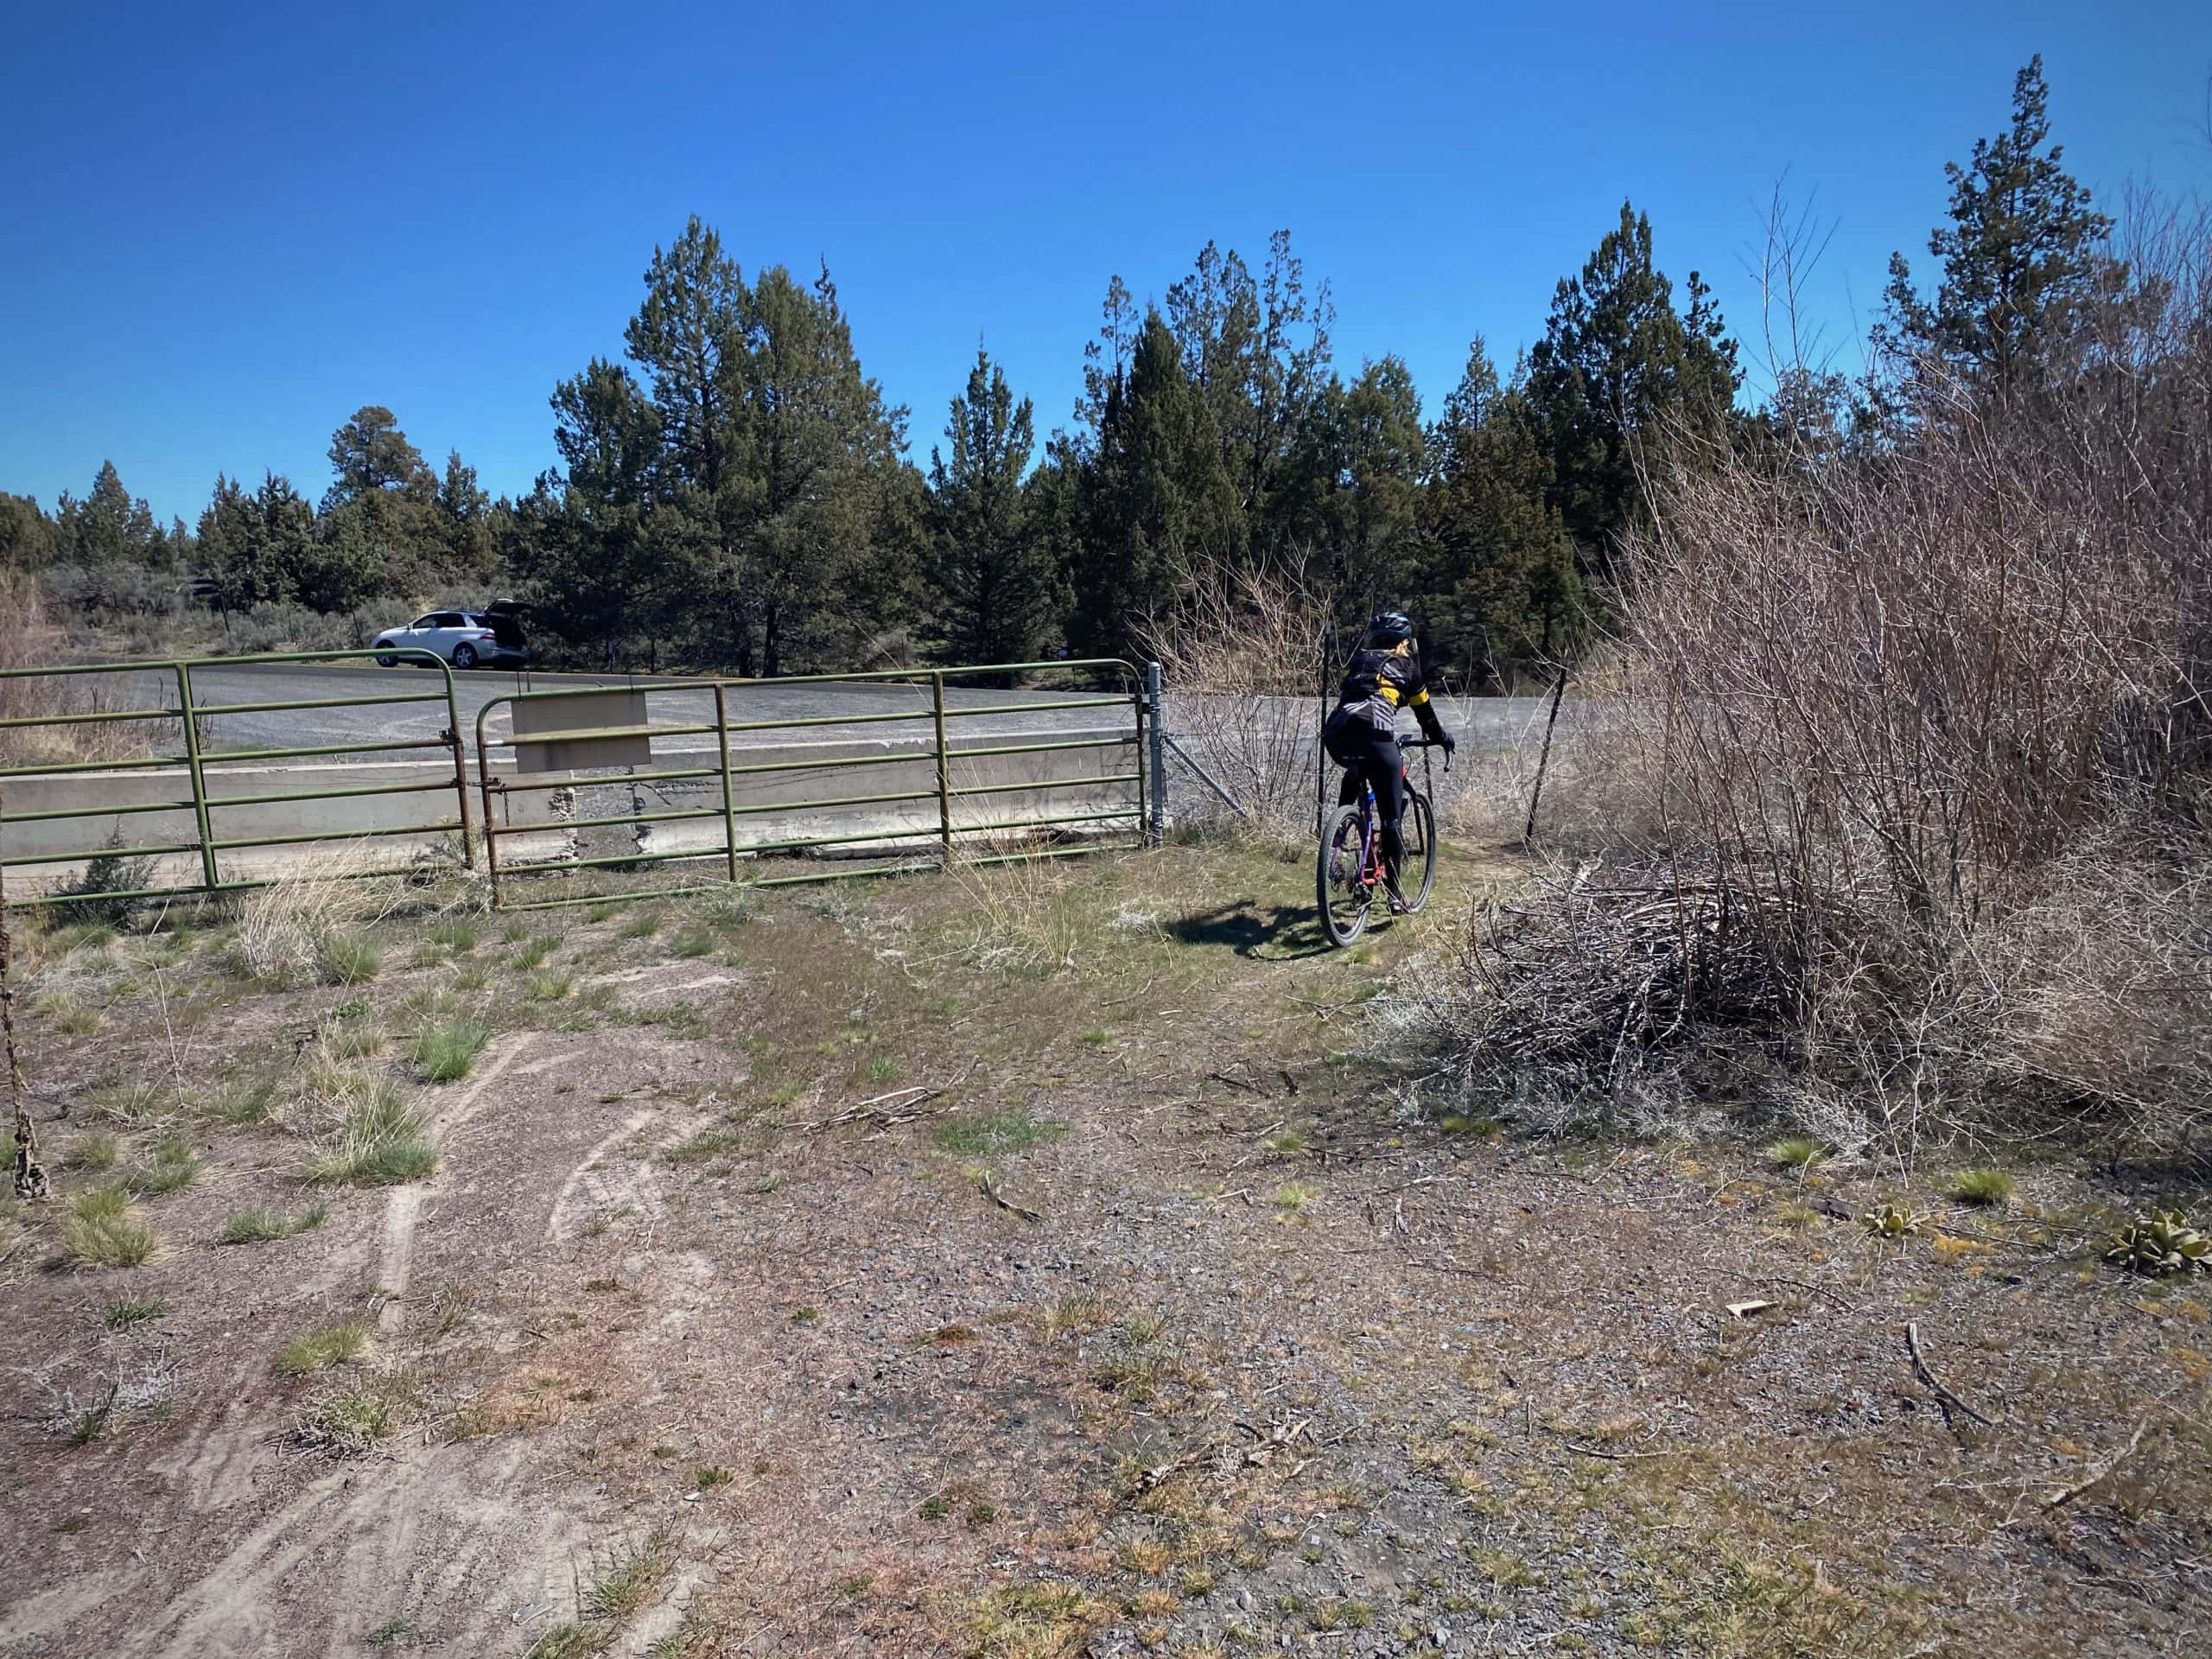 Cyclist passing through fence connecting the Culver Highway to Highway 87 near Madras, Oregon.